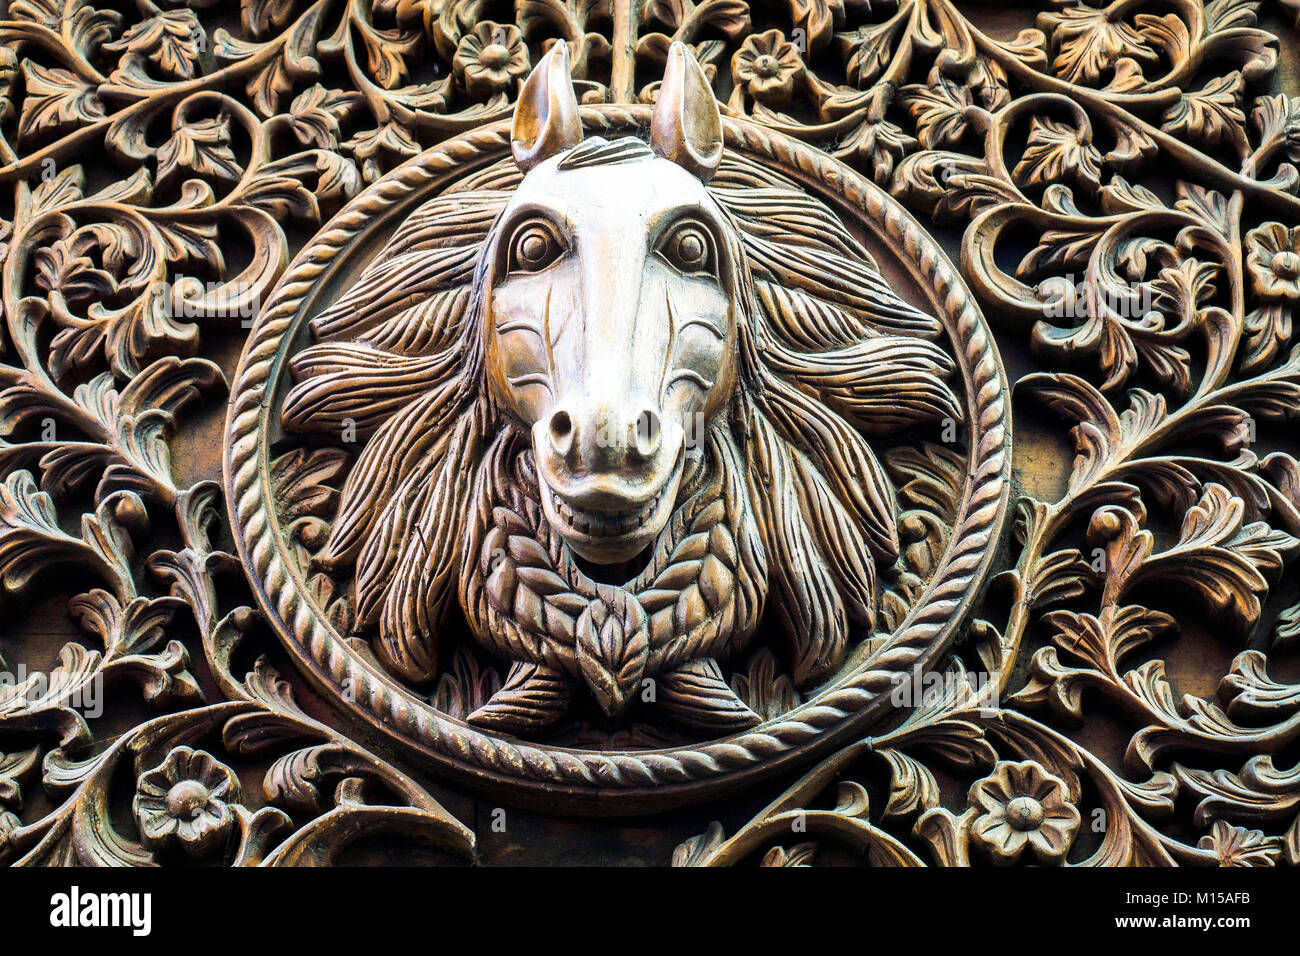 Horse Head Wood Carving At The Stable Market In Camden Town London Stock Photo Alamy